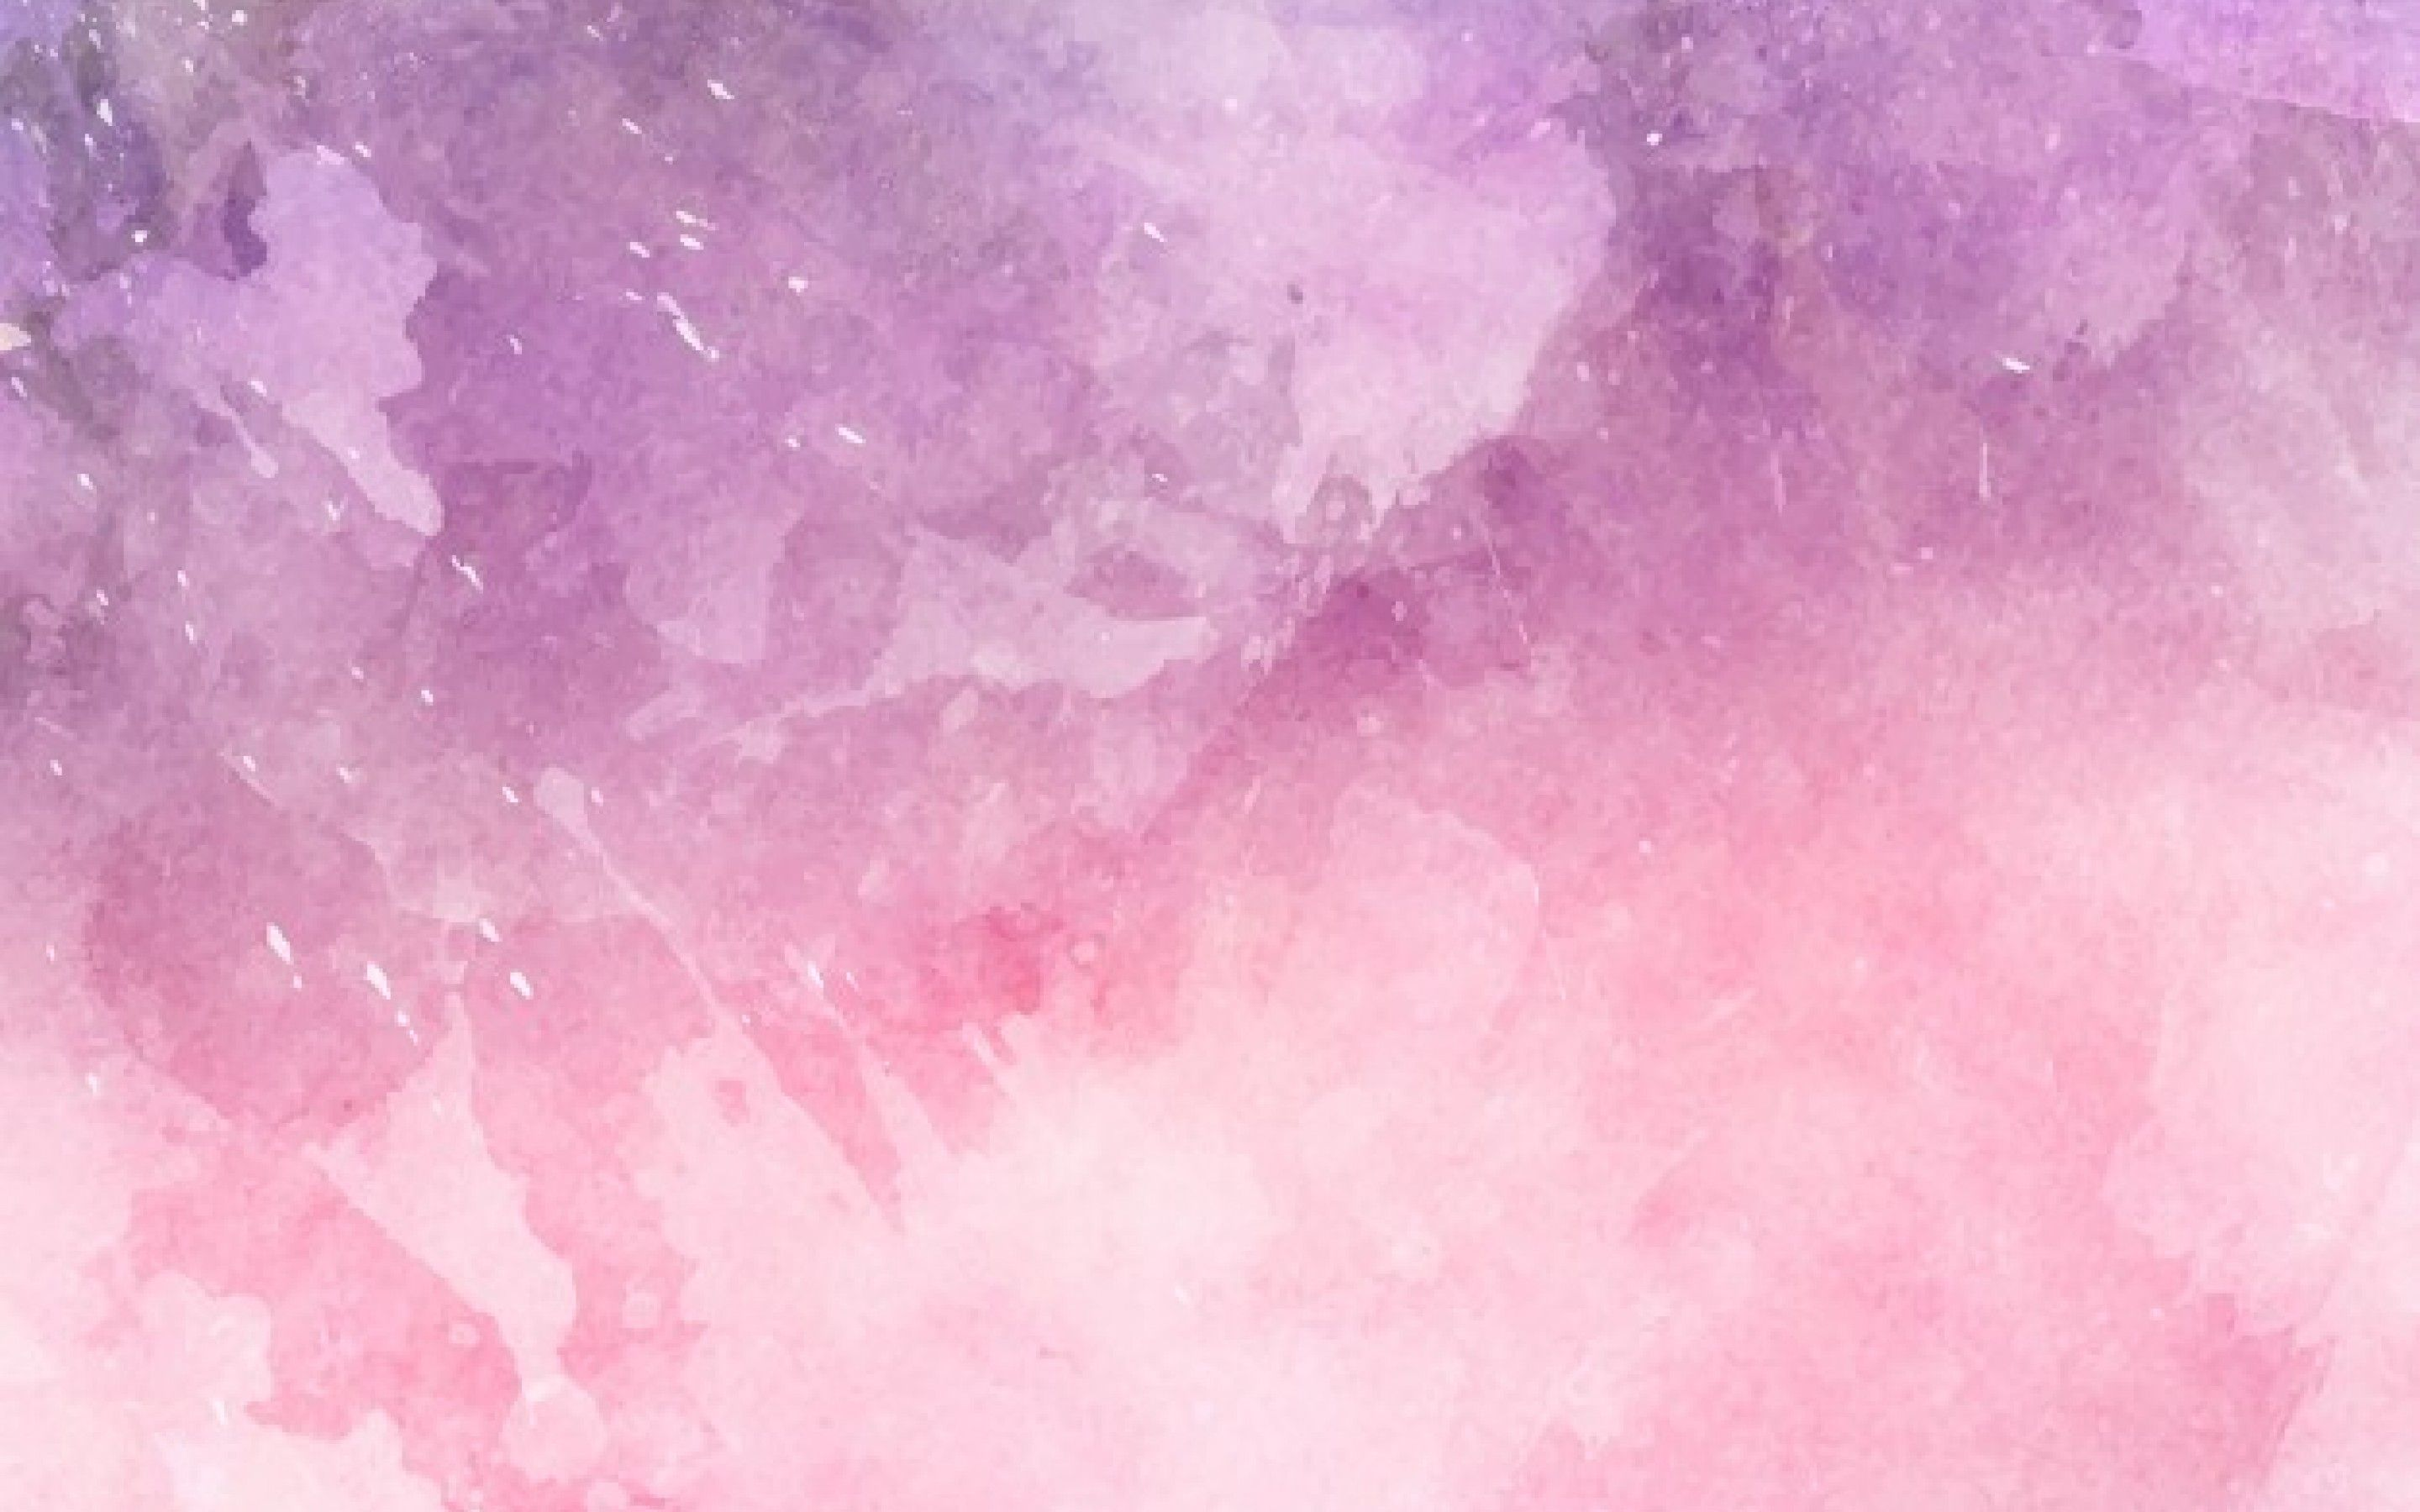 Pink Macbook Wallpapers - Wallpaper Cave